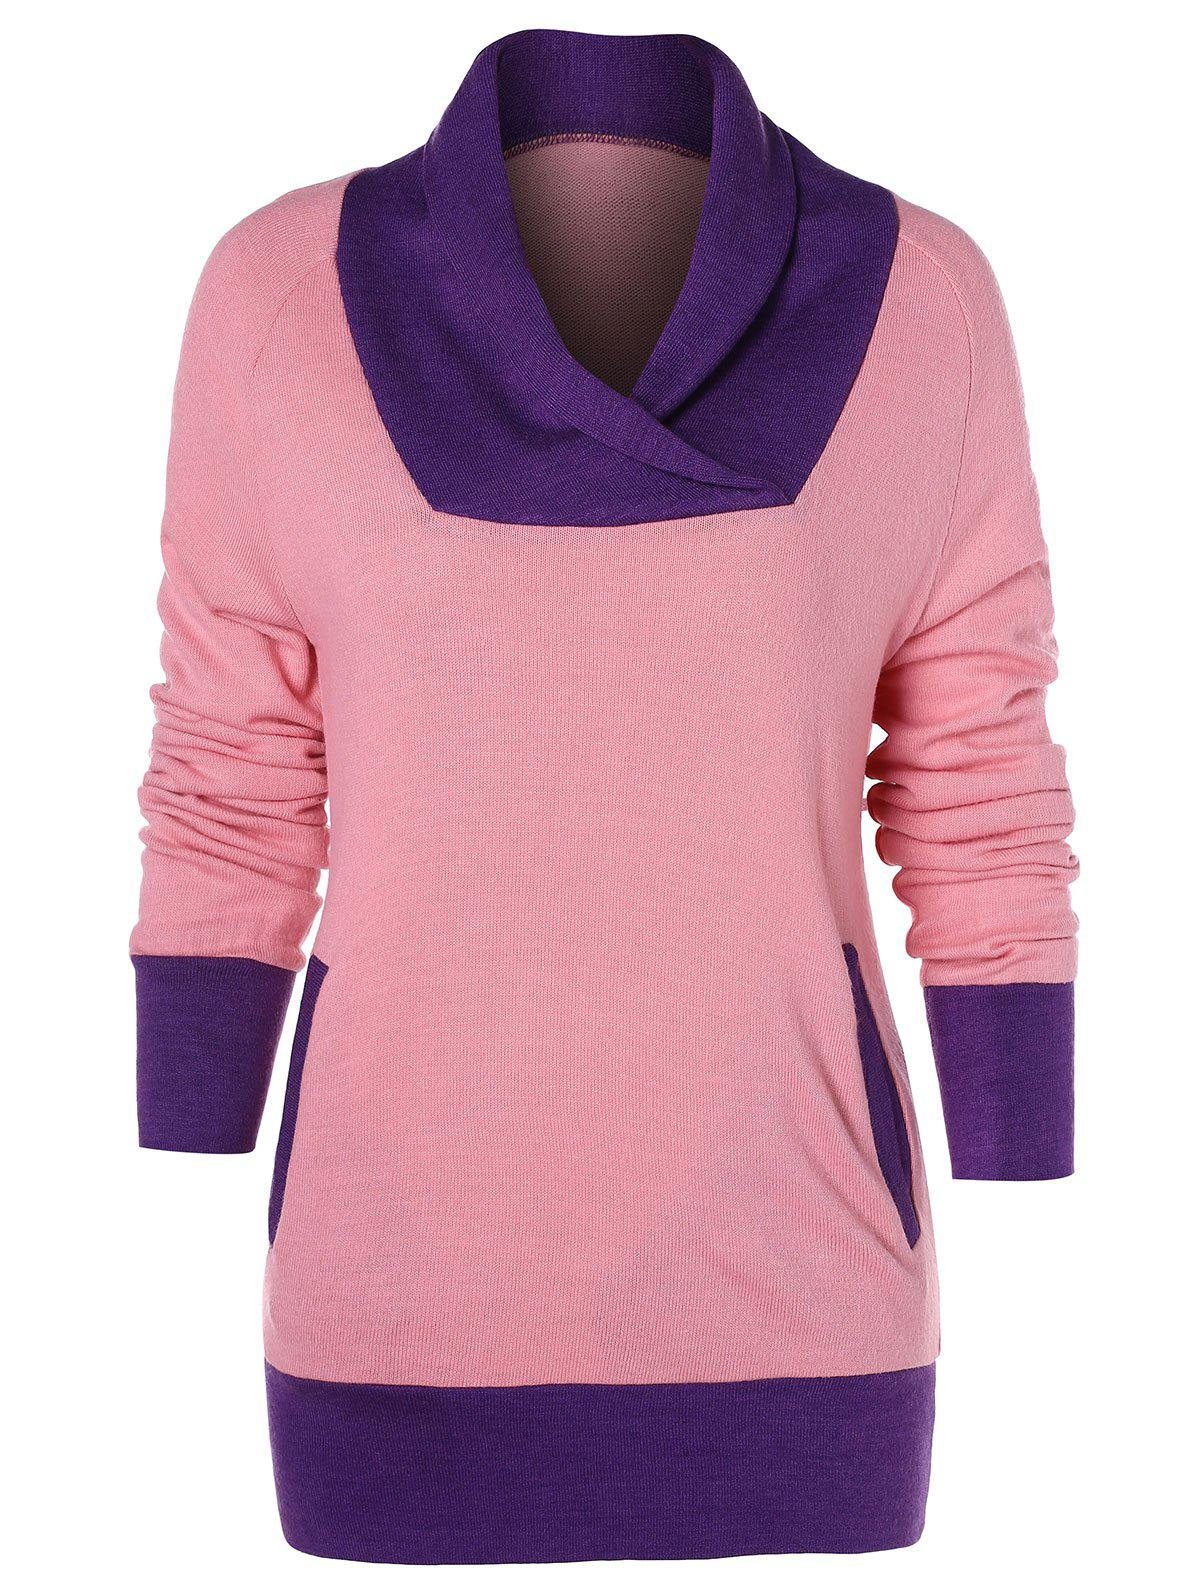 Affordable Color Trim Long Sleeve T-shirt with Pocket